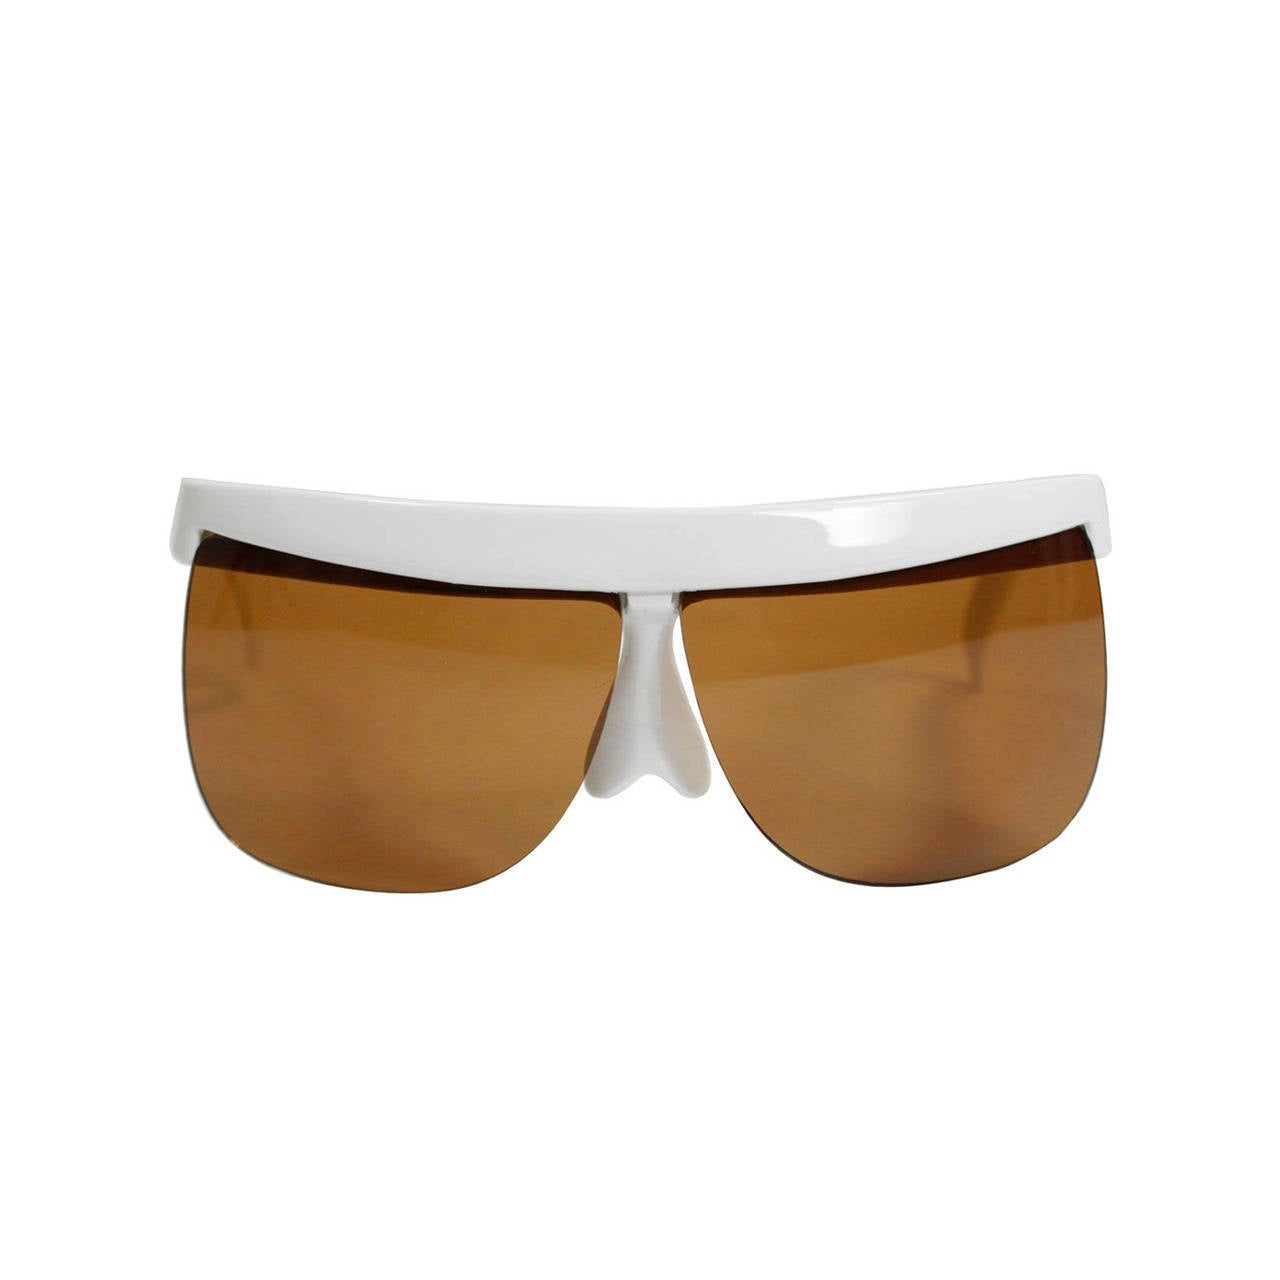 1960s Courreges White Sunglasses For Sale